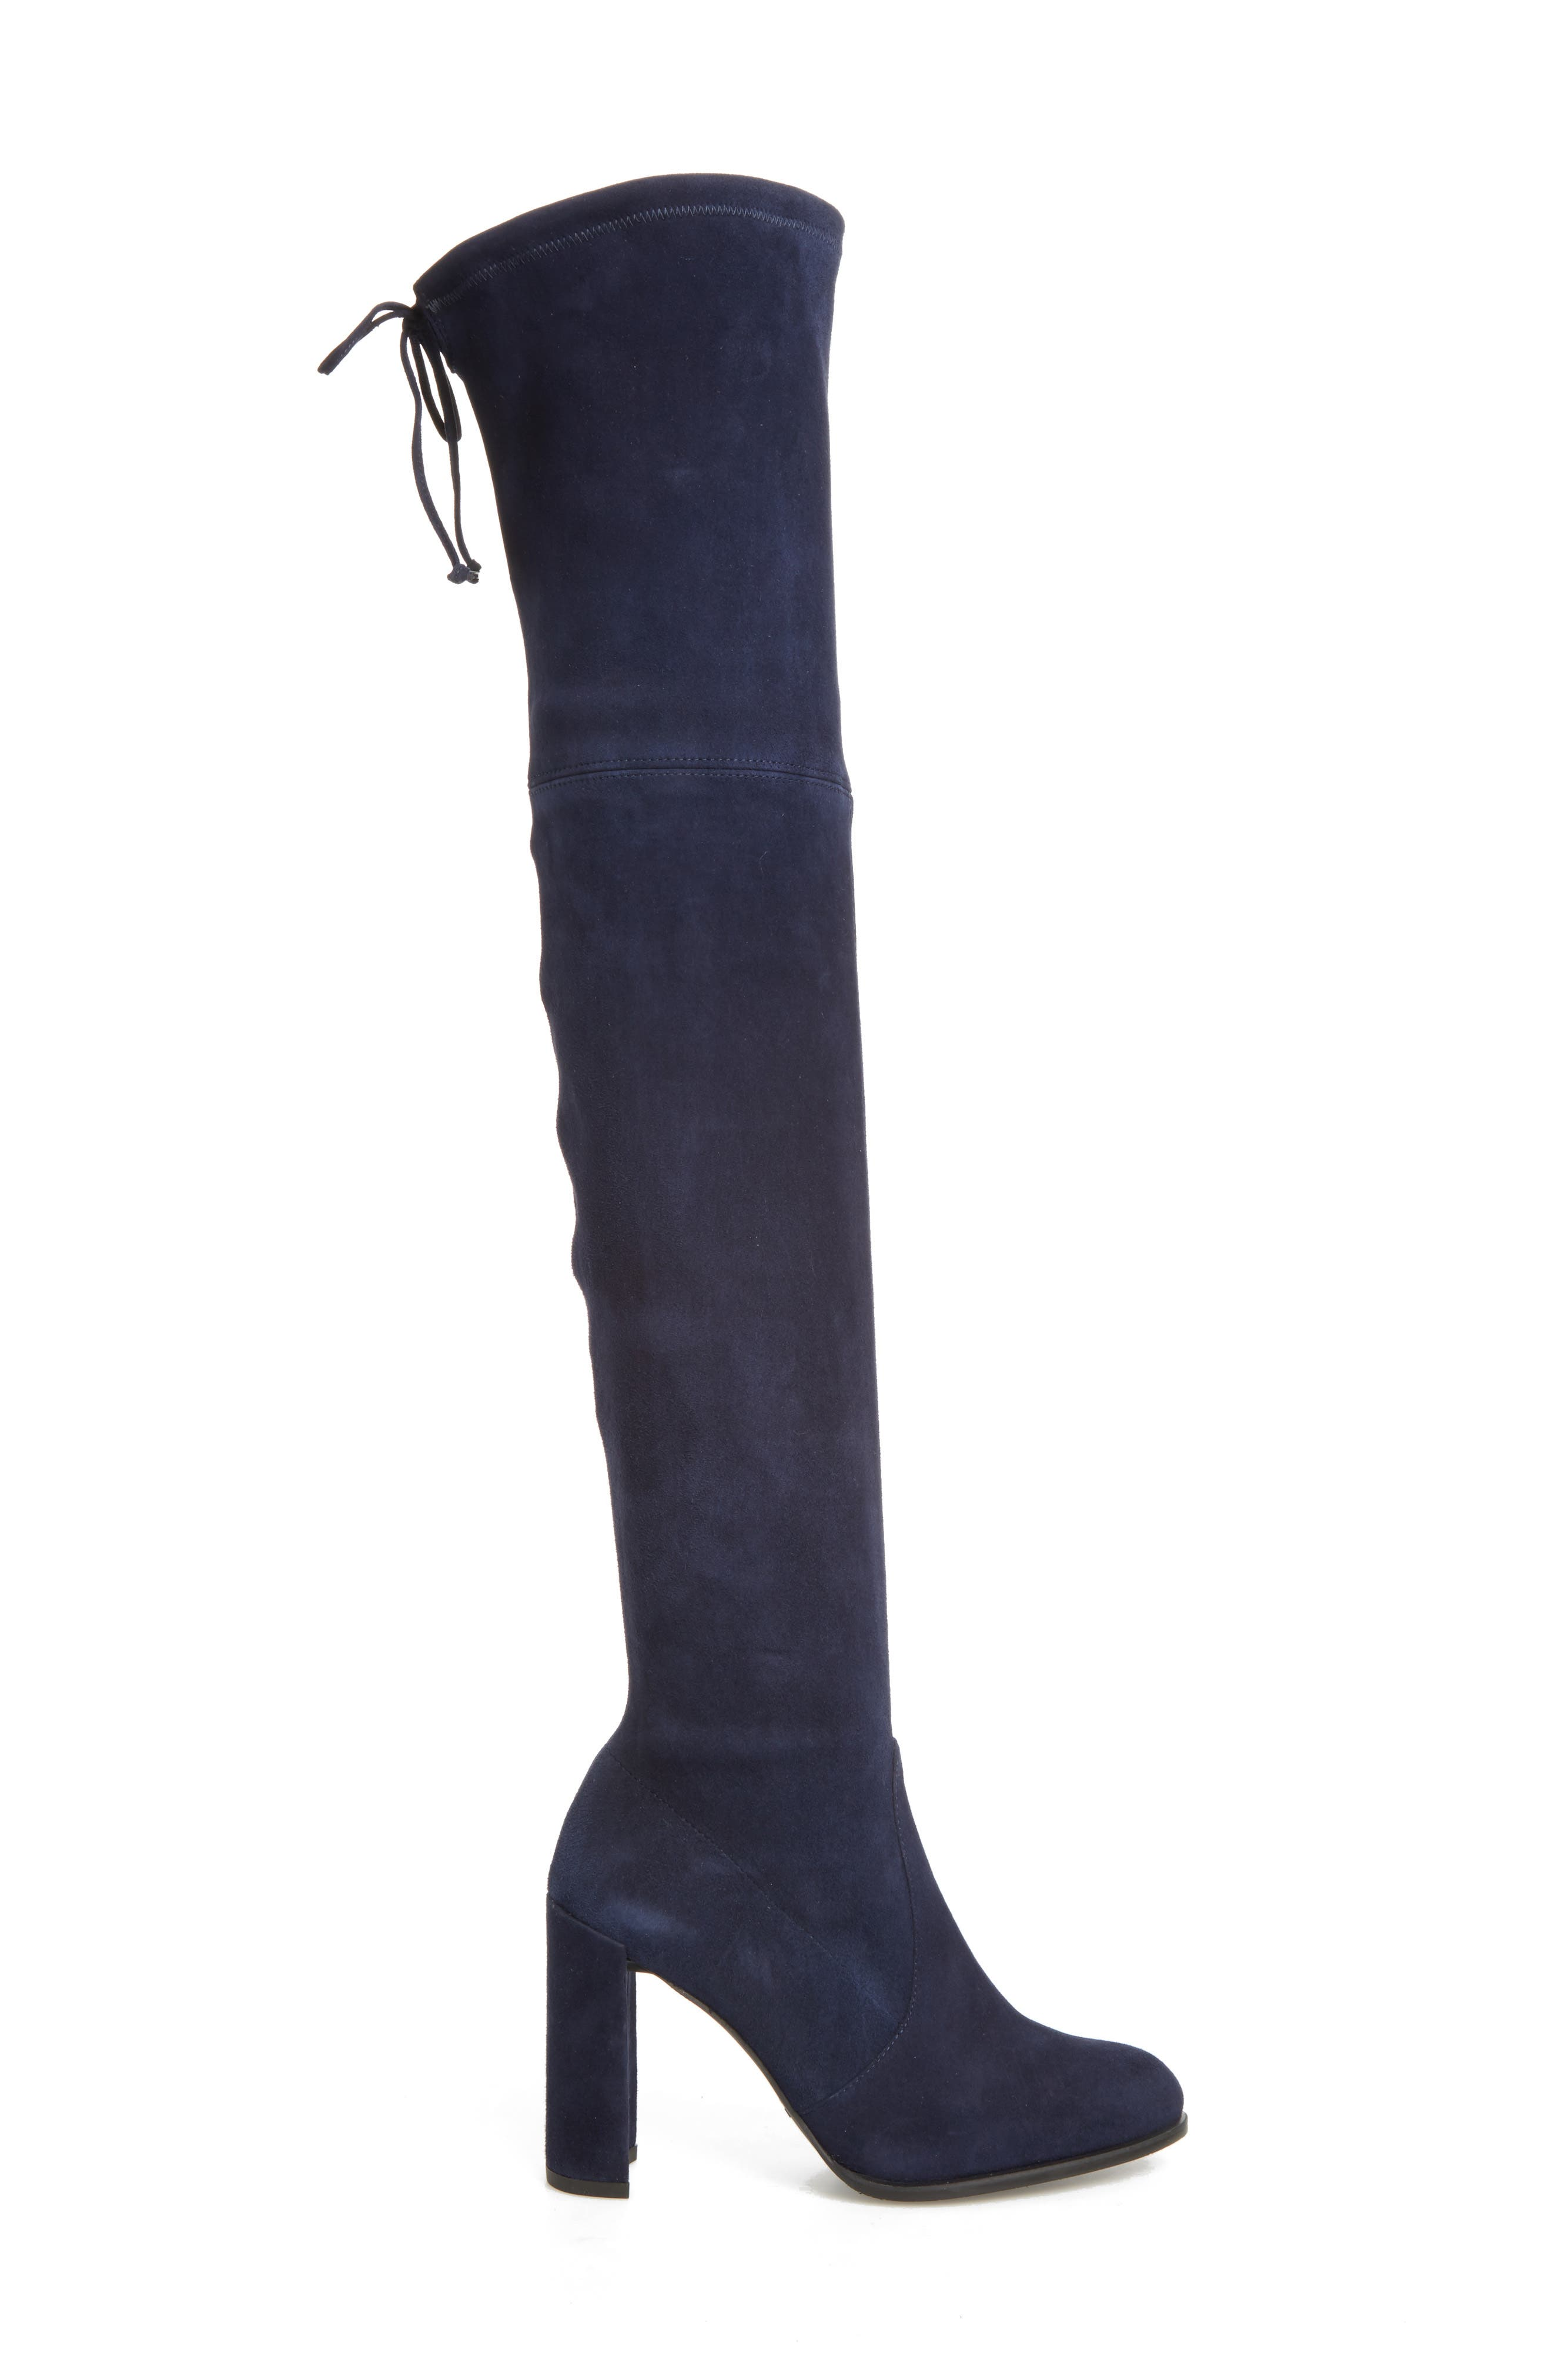 Hiline Over the Knee Boot,                             Alternate thumbnail 30, color,